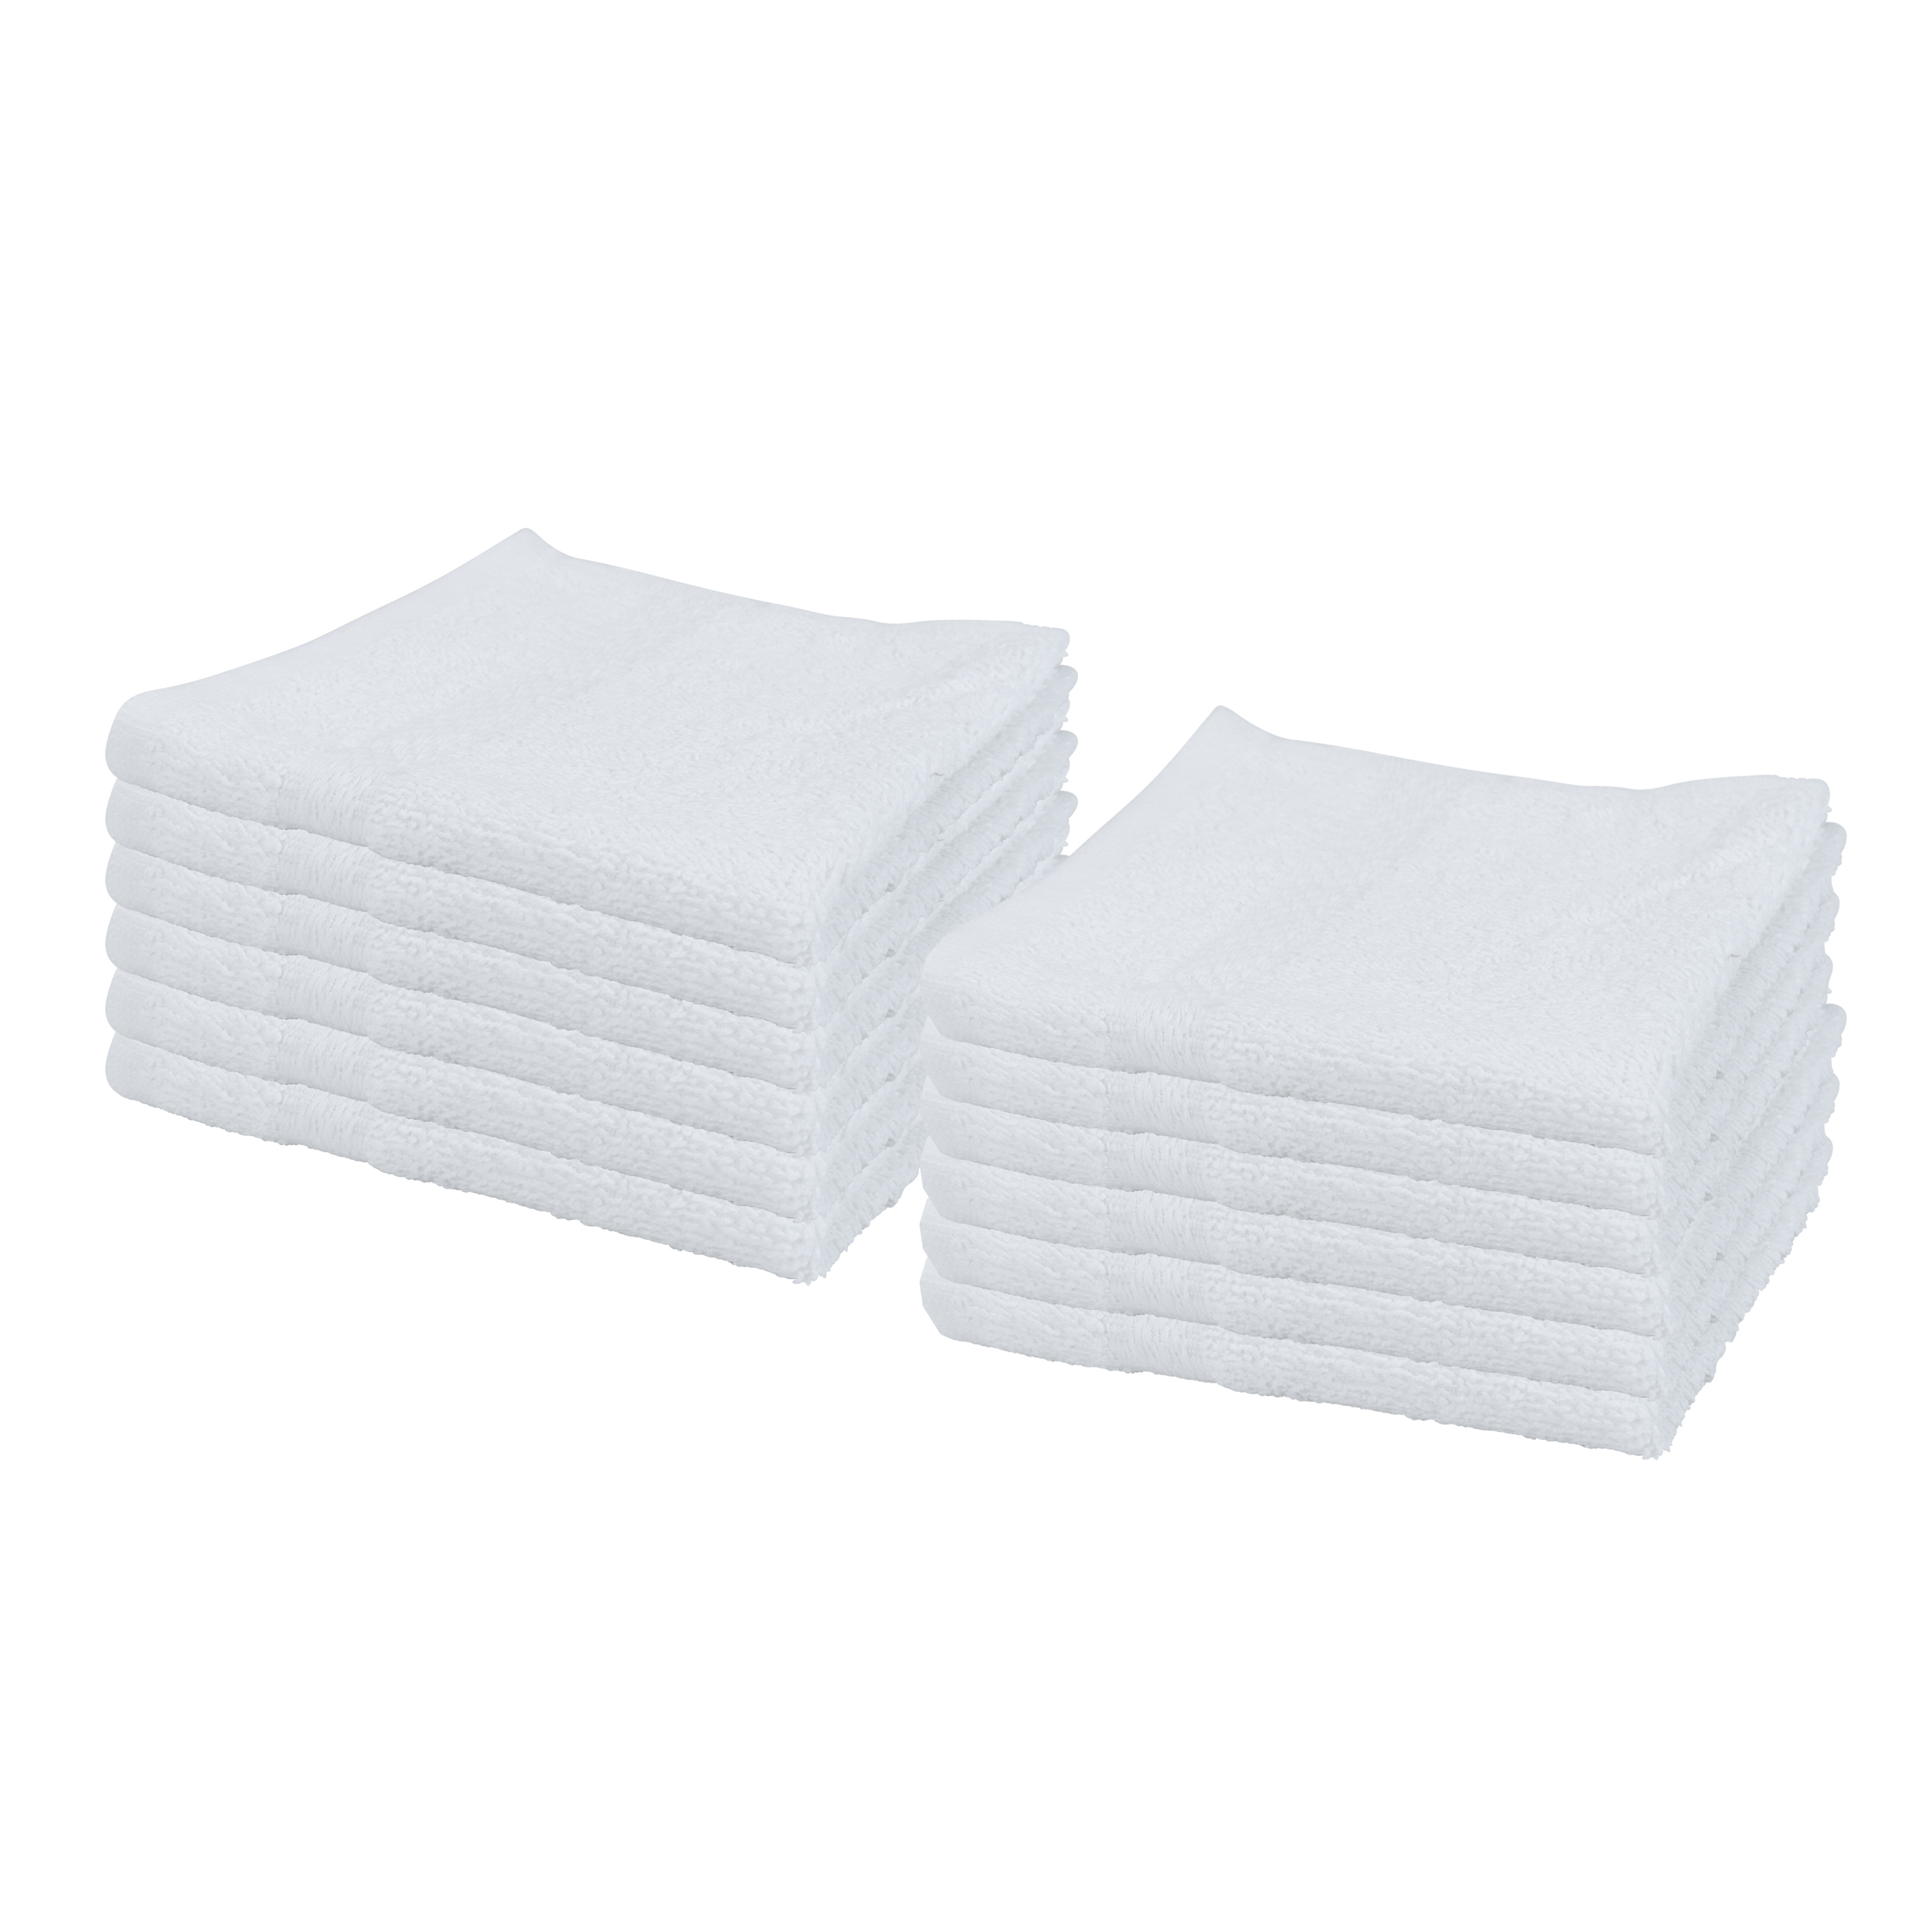 Izo Home Goods Cotton Small Bath Hand Gym Spa Towels 12-Pack Highly Absorbent